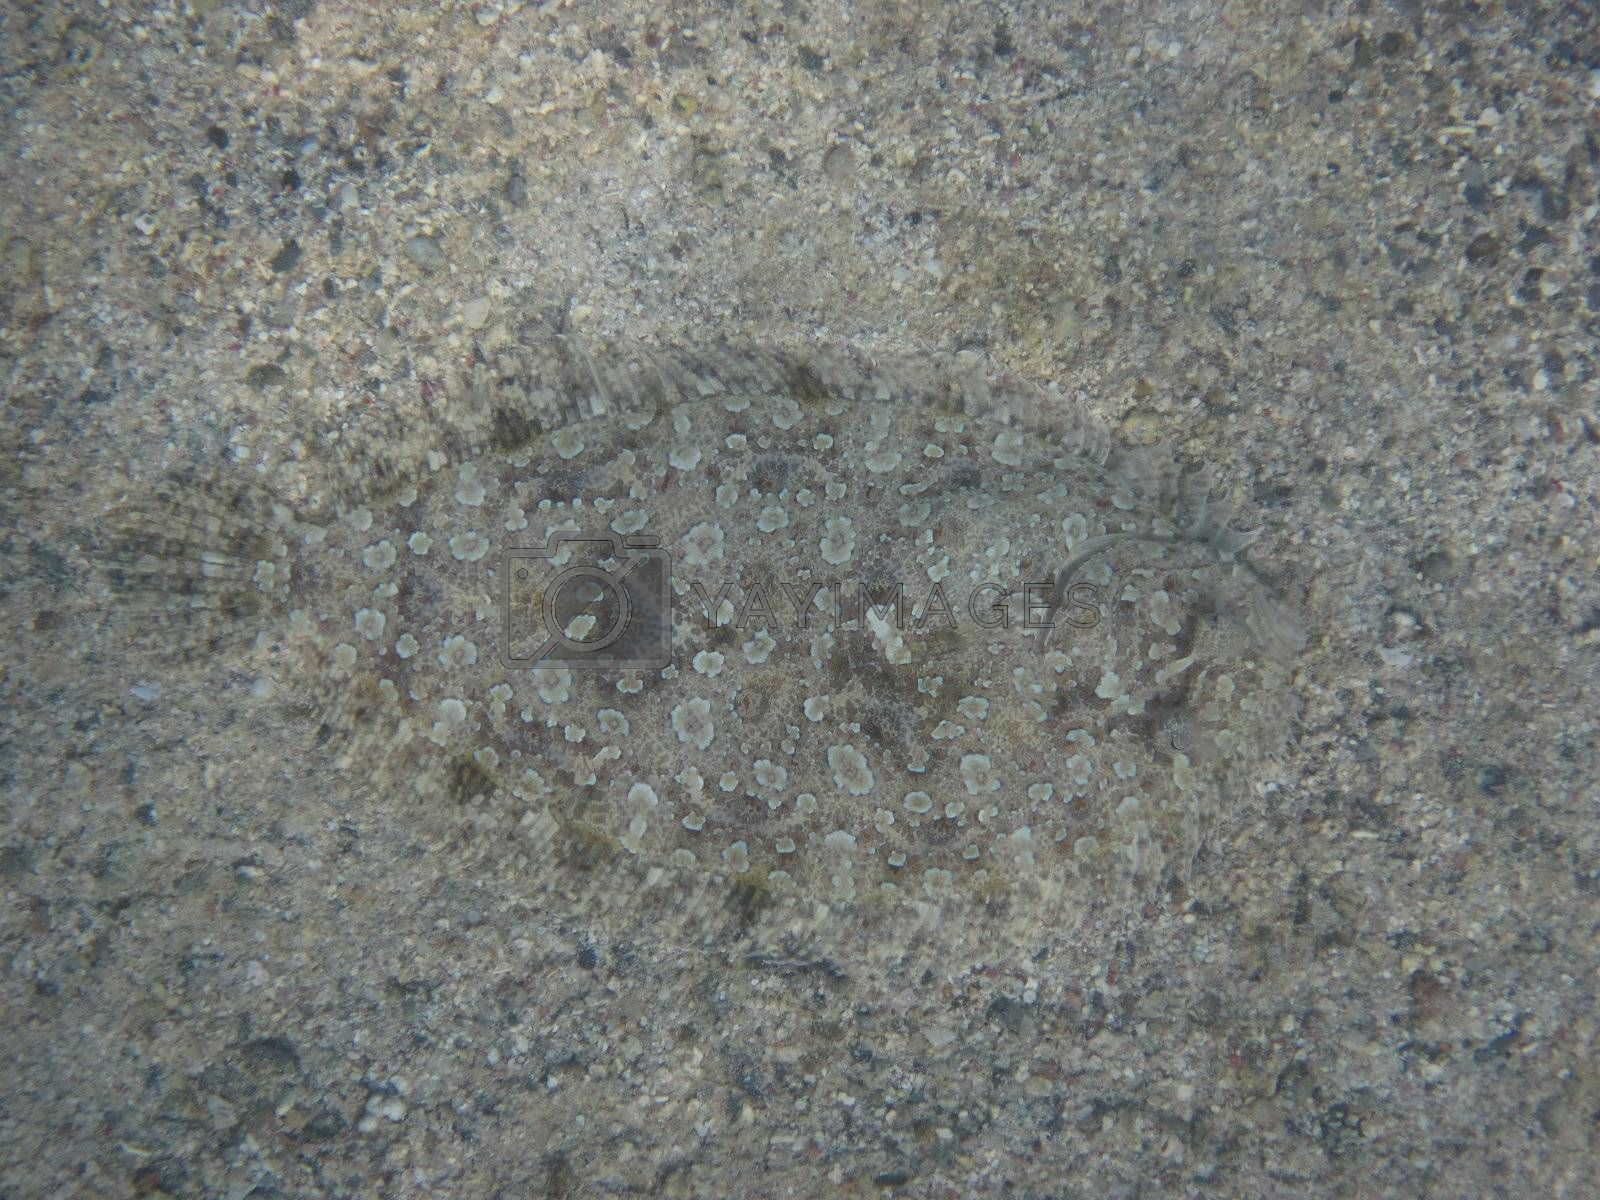 small flat fish with excellent camouflage for the sand on the sea floor